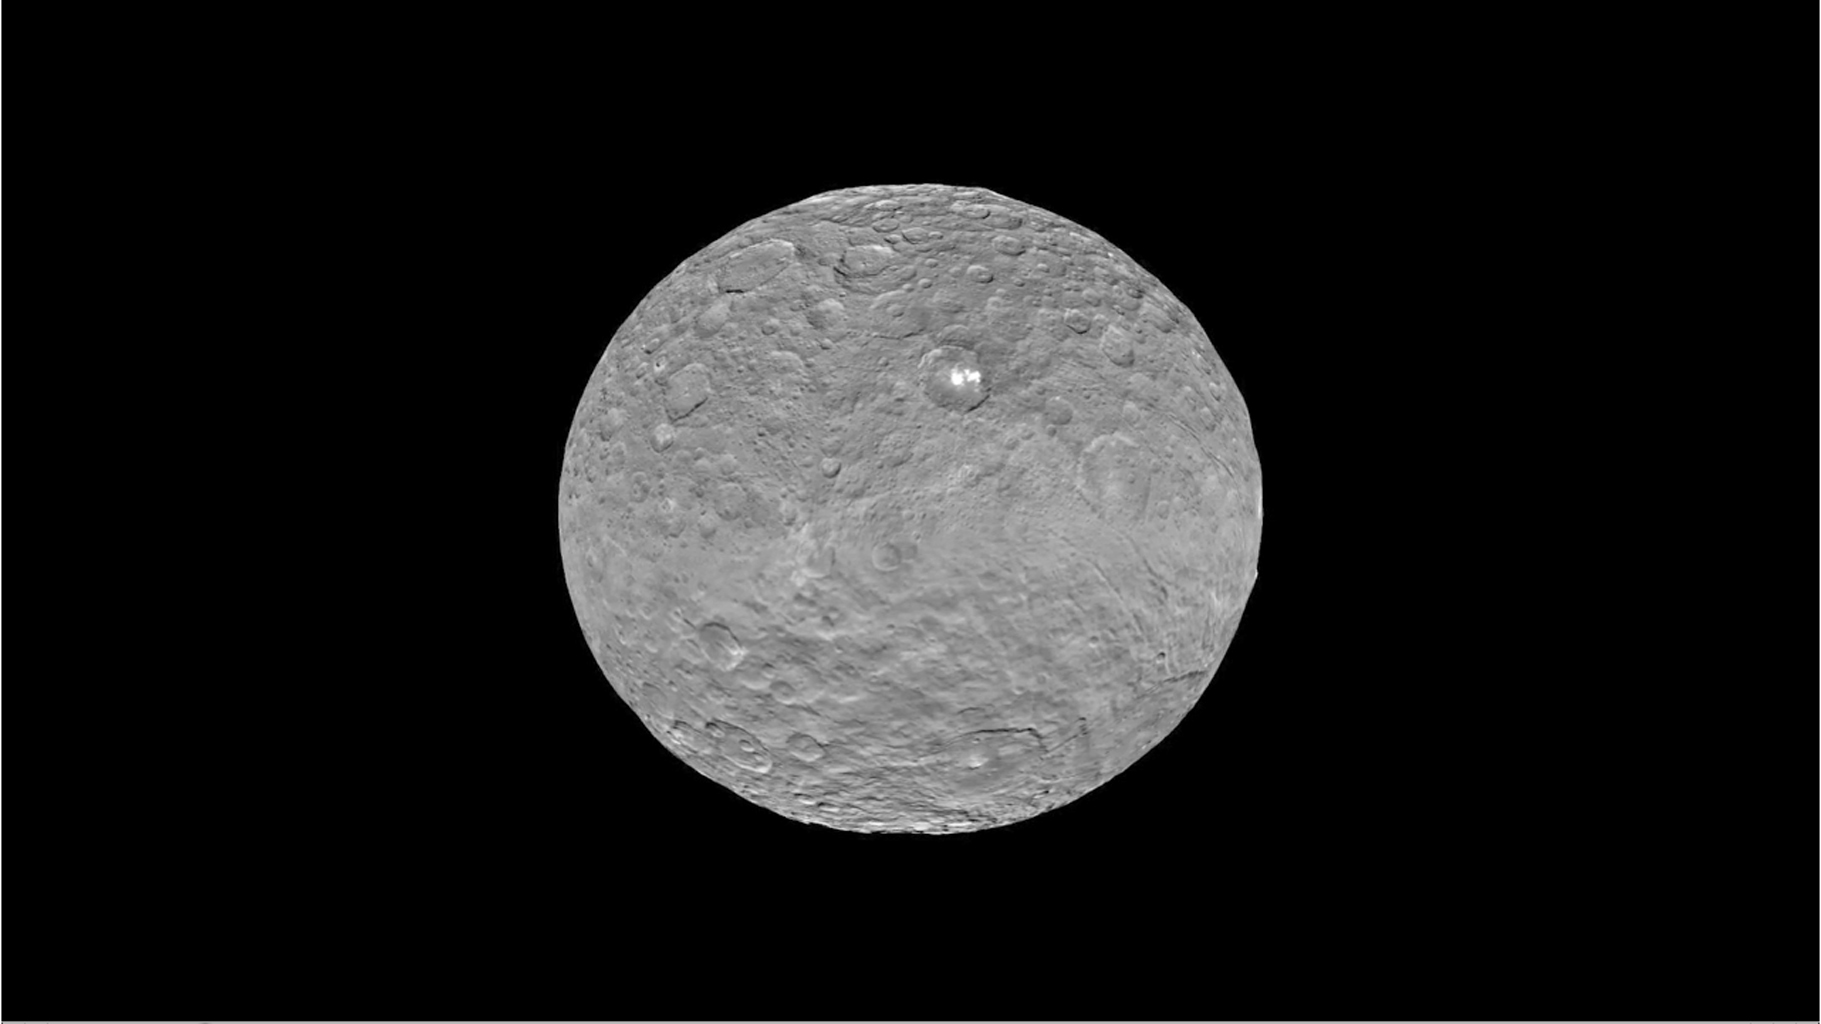 Ceres Animations: Global View, Occator, Mountain, 3-D View